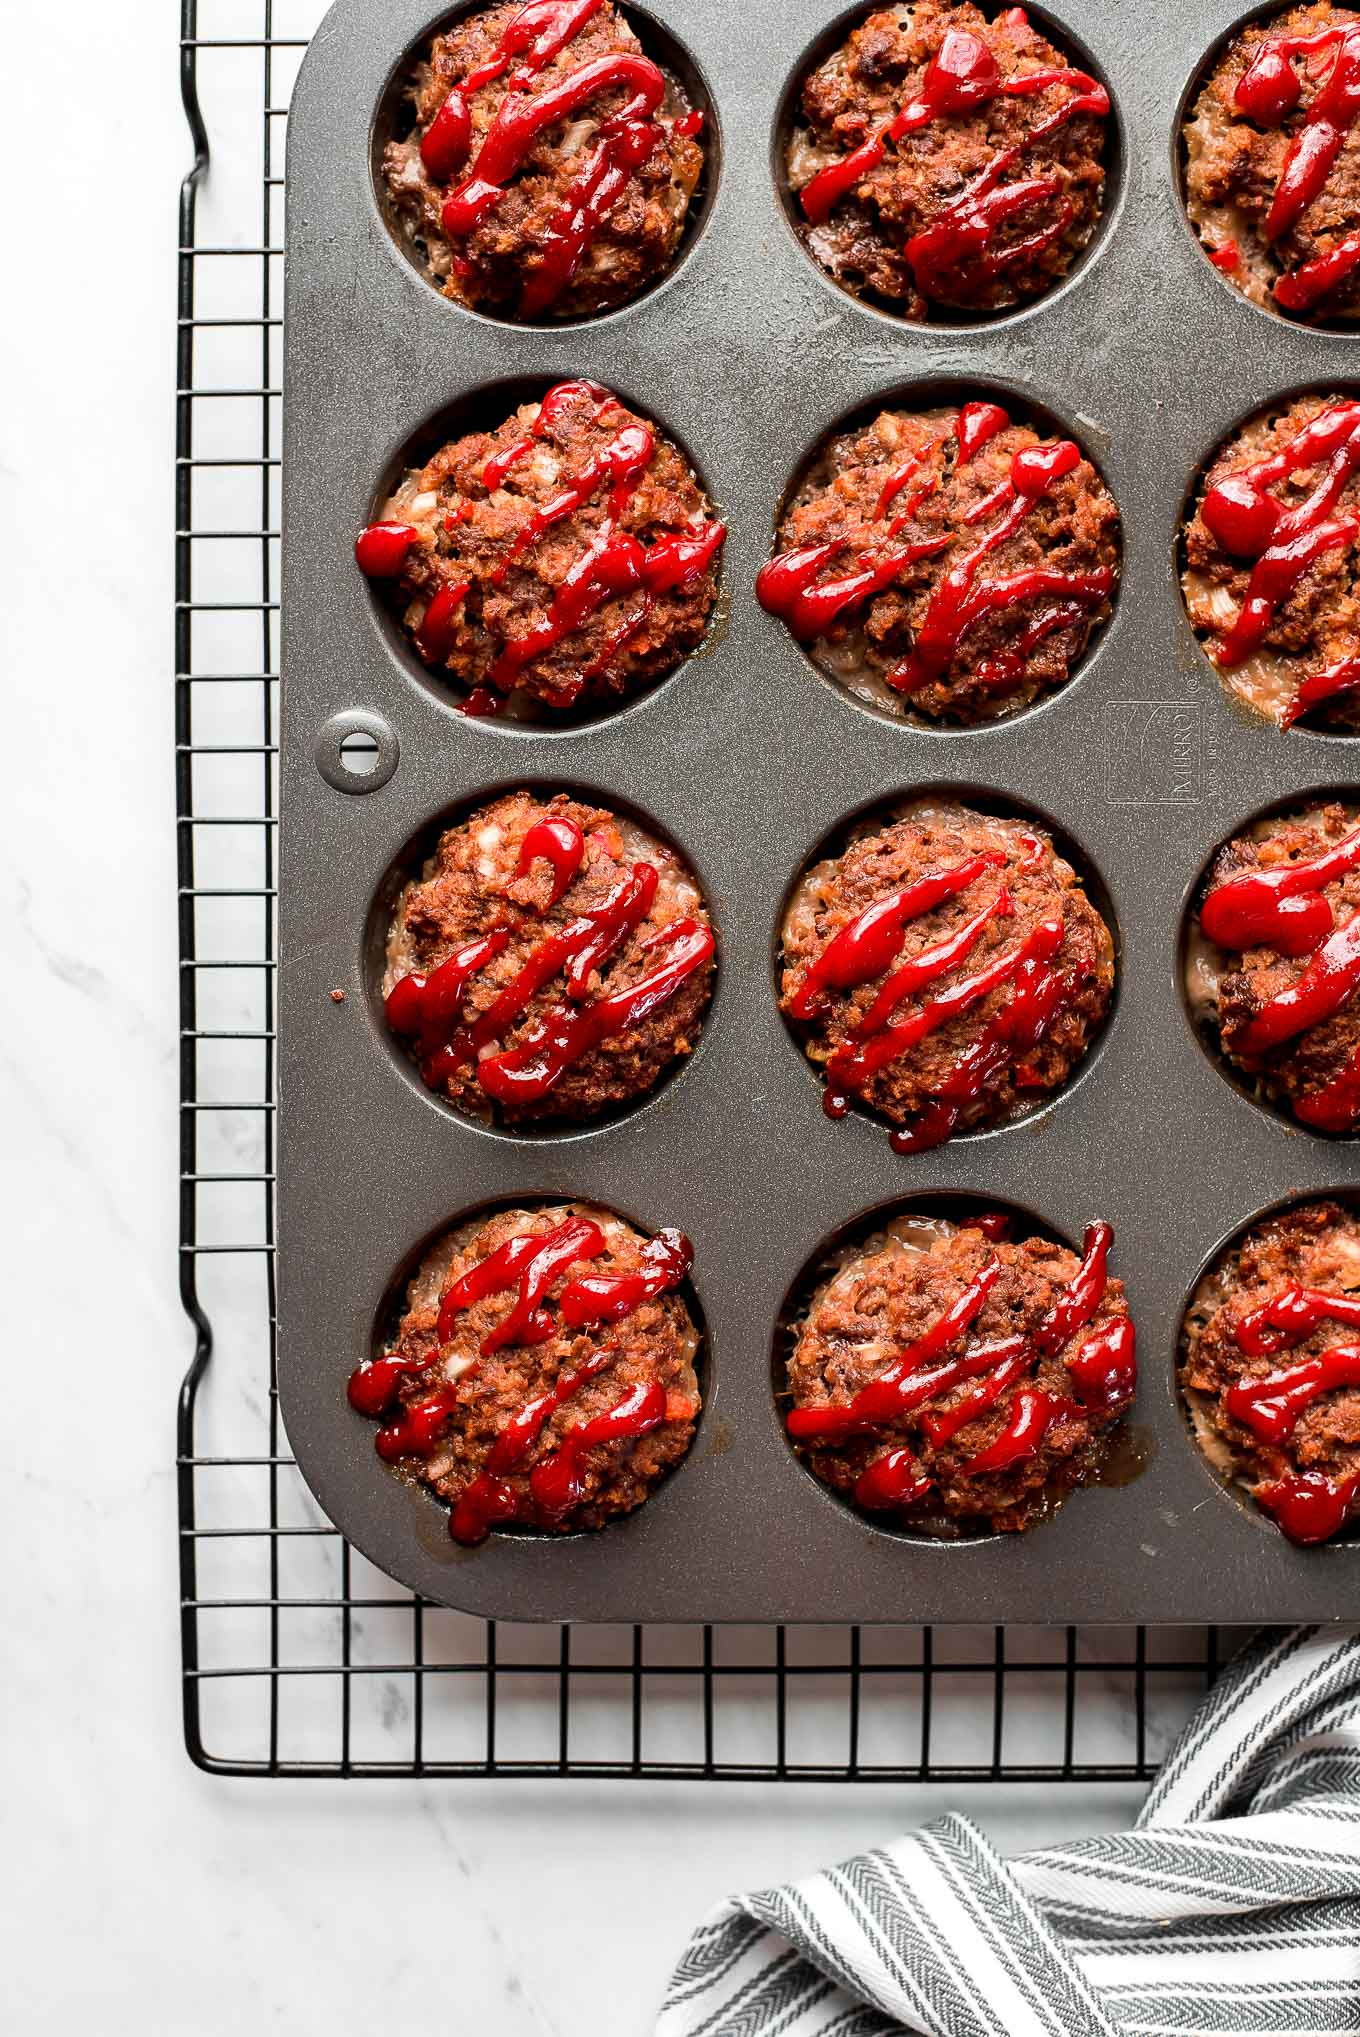 Meatloaf muffins drizzled with ketchup and in a muffin tin.